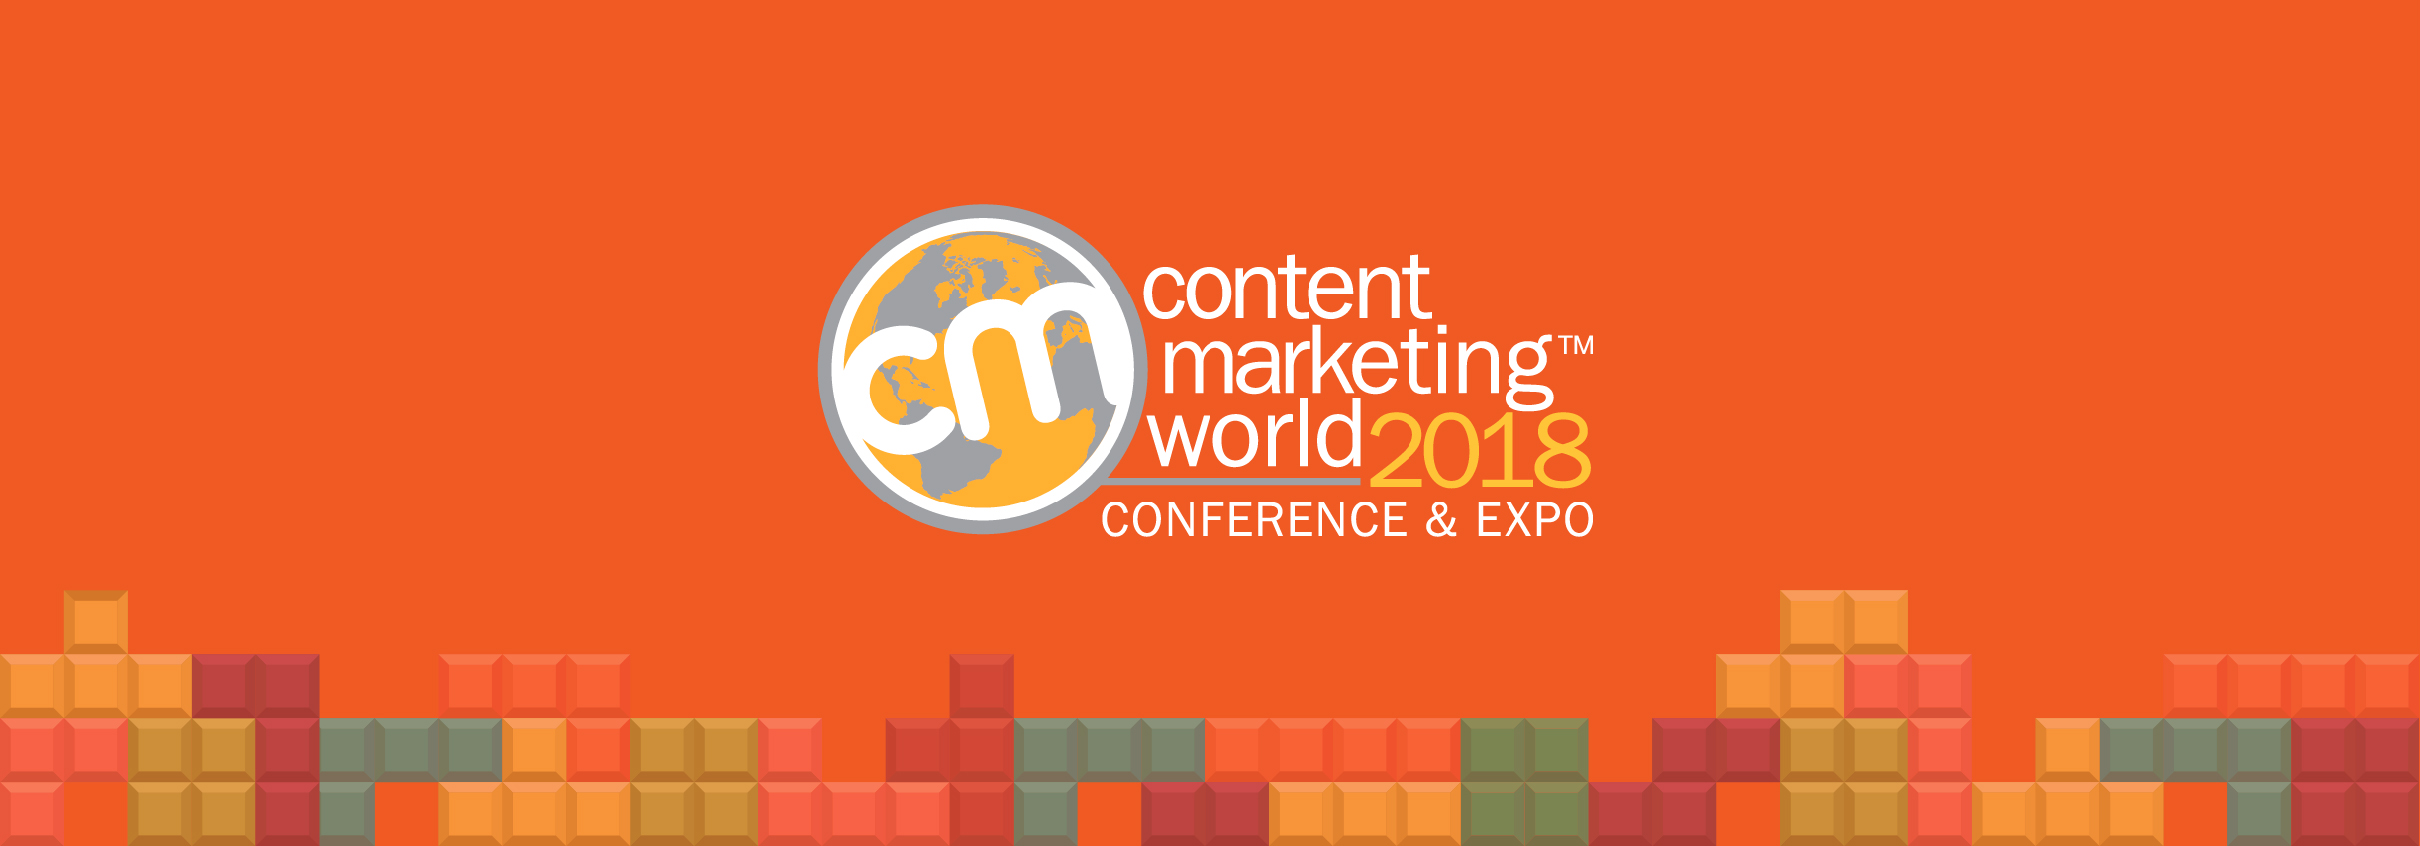 8 of Our Biggest Takeaways & Marketing Lessons from Content Marketing World 2018